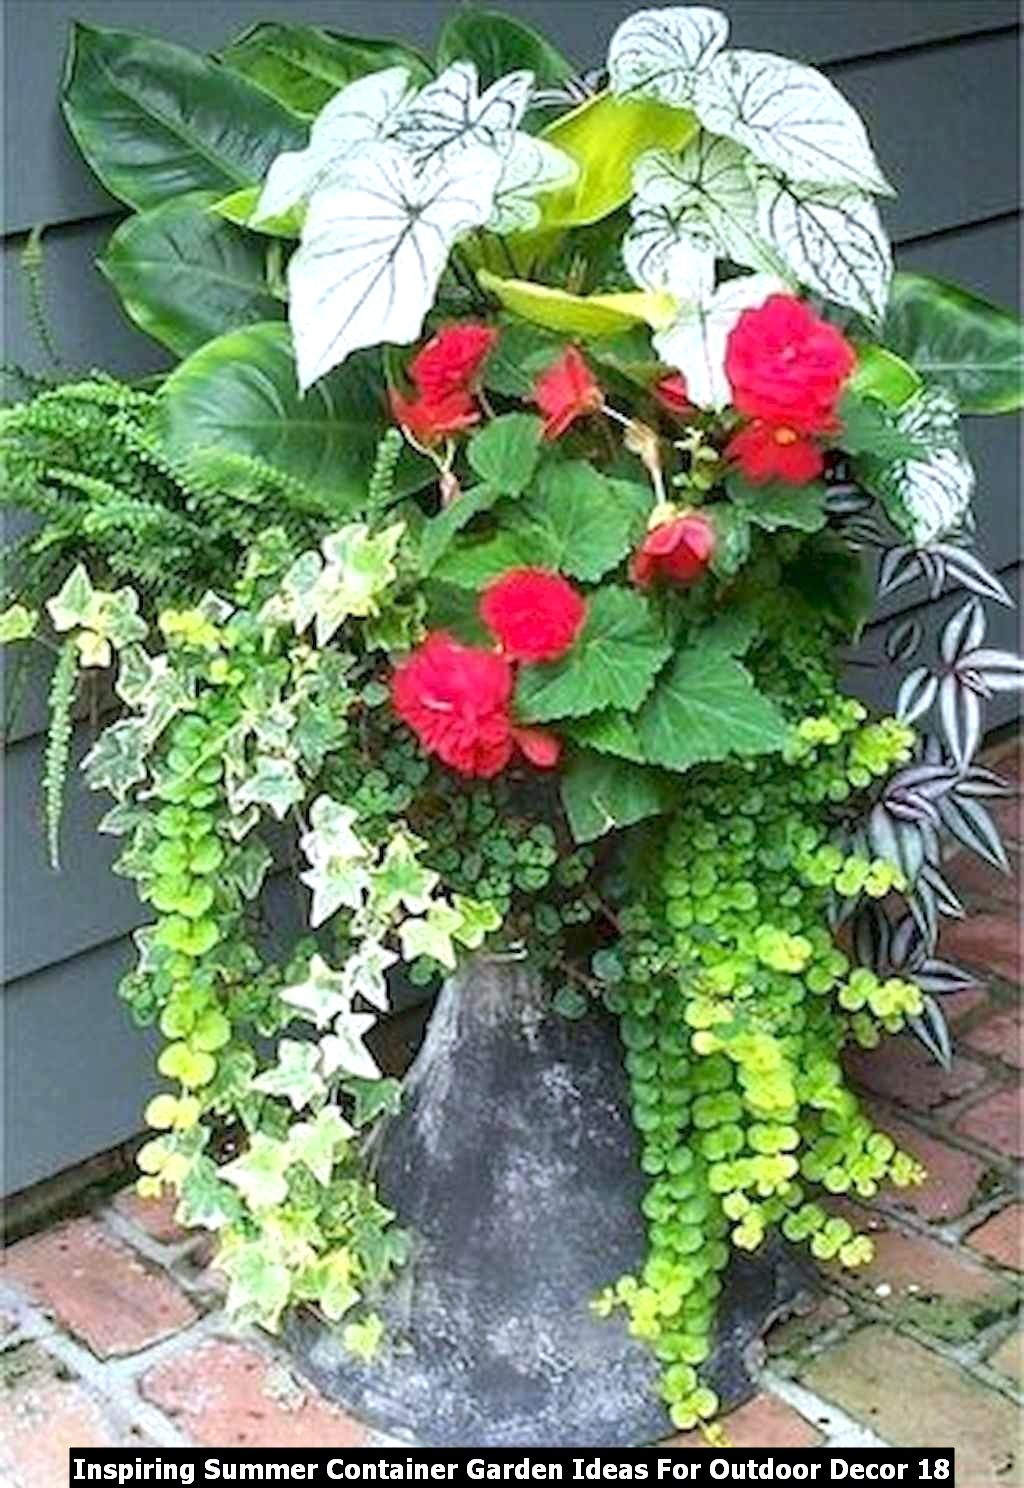 Inspiring Summer Container Garden Ideas For Outdoor Decor 18